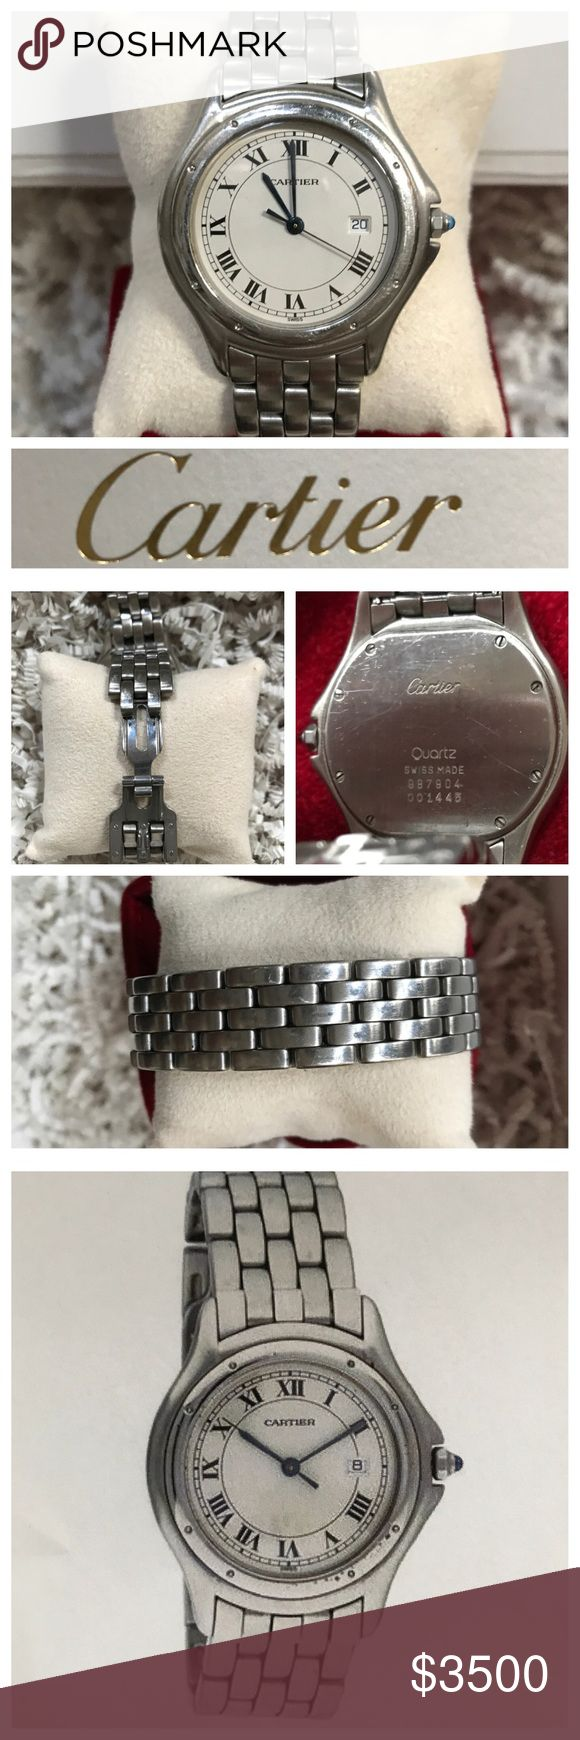 CARTIER PANTHERE (COUGAR) WATCH Ladies PANTHERE midsize watch (33 mm). Stainless steel bracelet. Quartz movement. Model number 987904. Serial number 001445. Polished bezel. Sapphire point. Roman numerals  on white dial face with date feature. Minor scratches. EXCELLENT condition. New battery. Comes w/ velvet Cartier presentation box, ribbon, Cartier watch book and Cartier shipment box. Makes a great gift...or treat yourself! The watch is gorgeous and classic!  Two appraisals included ranging…